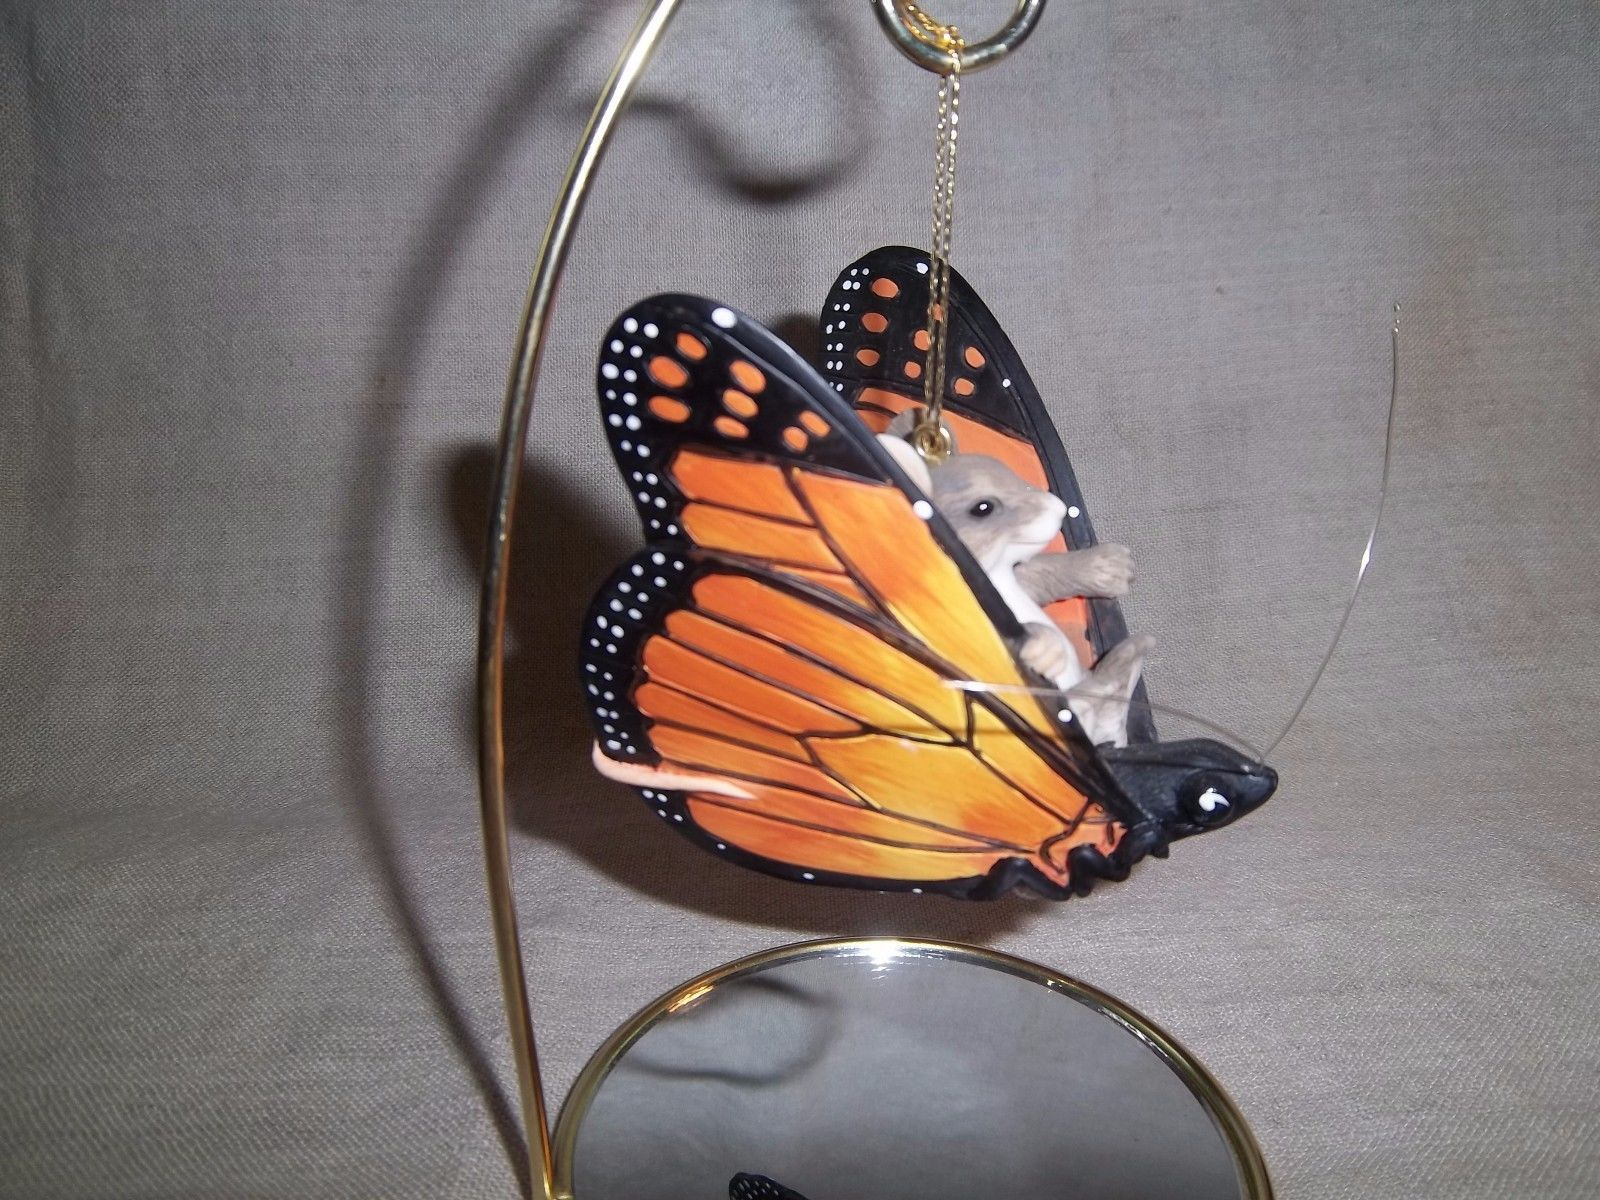 Charming Tails Mouse Riding A Monarch Butterfly Hanging Figurine On Mirror Base For Sale 7 00 See Photos Money Back Guarantee Here Is An Adorable Hanging